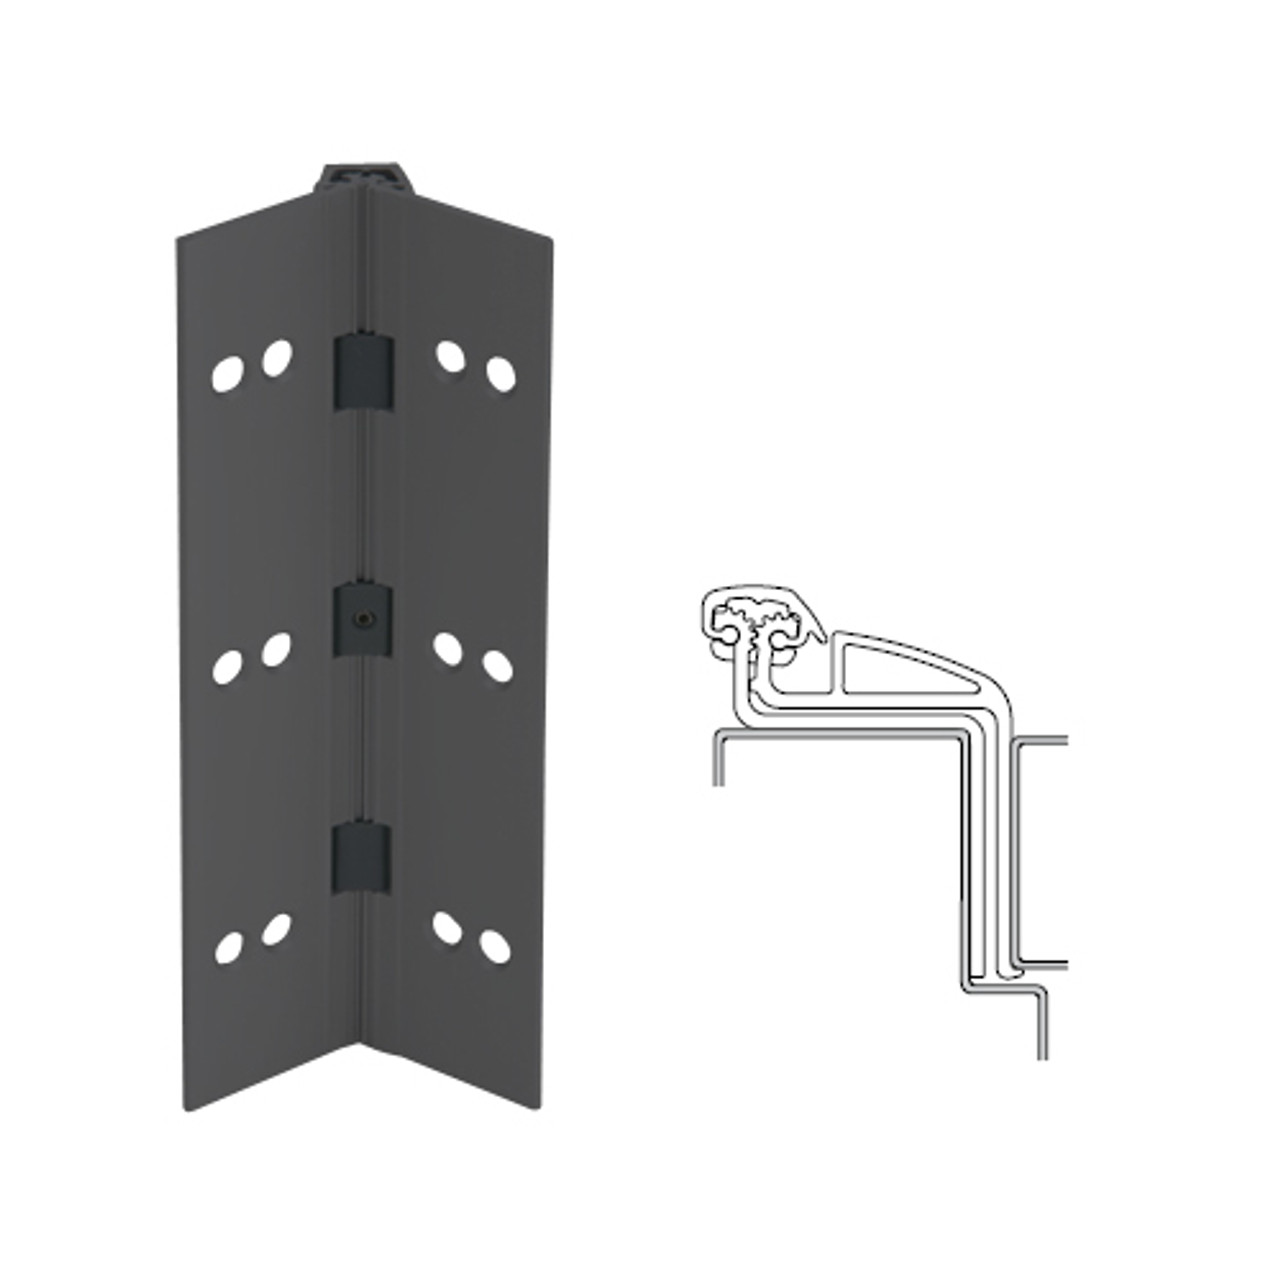 041XY-315AN-83-TF IVES Full Mortise Continuous Geared Hinges with Thread Forming Screws in Anodized Black